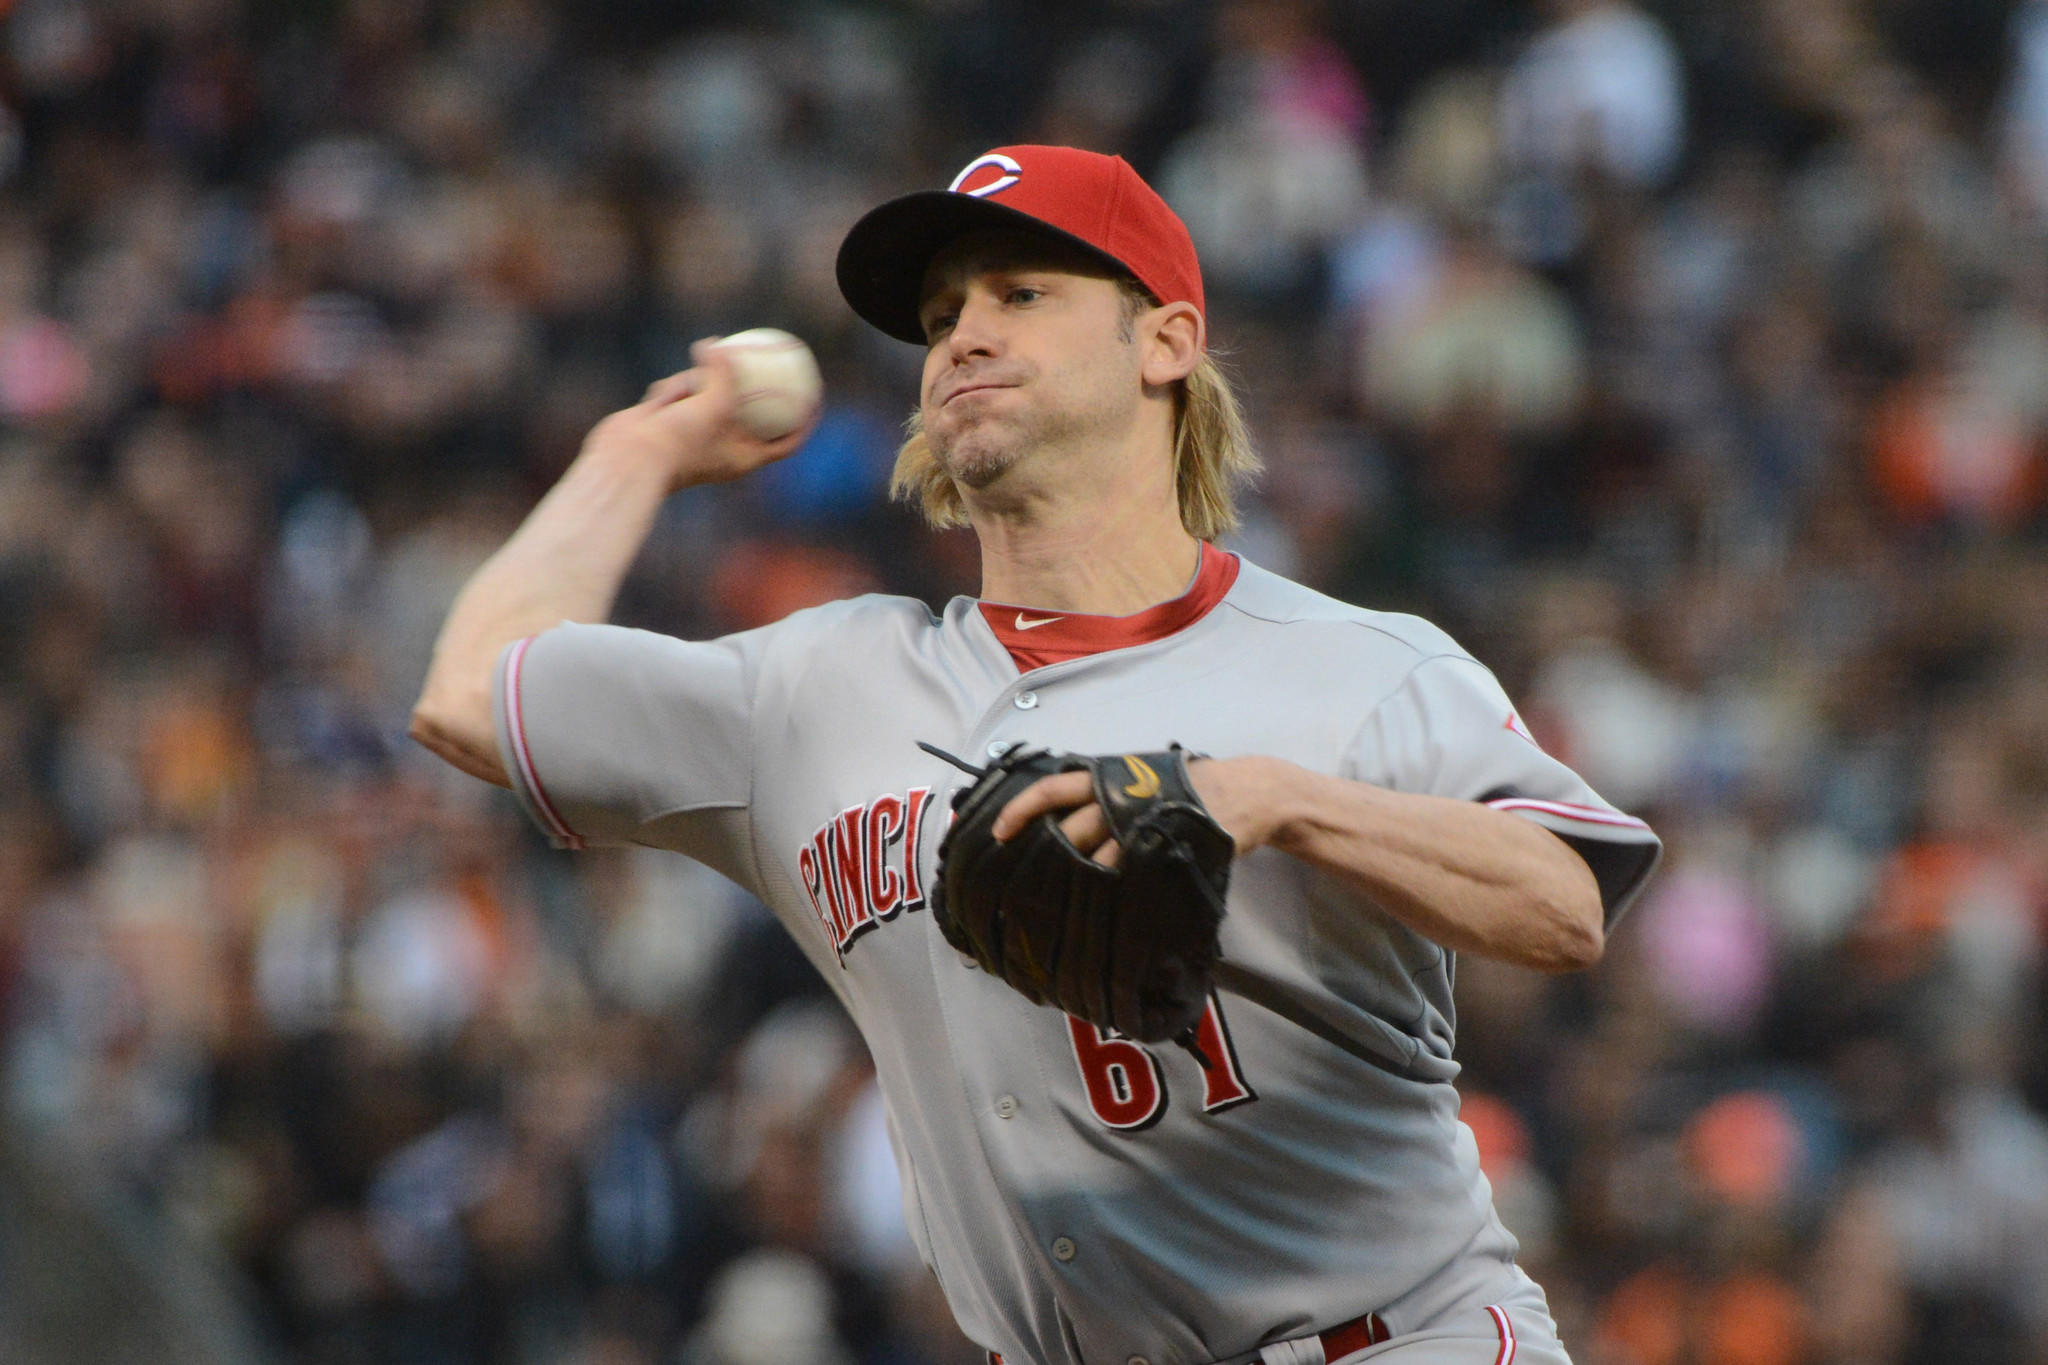 Bronson Arroyo signed a two-year deal with Arizona and will make $9.5 million in each of the next two seasons